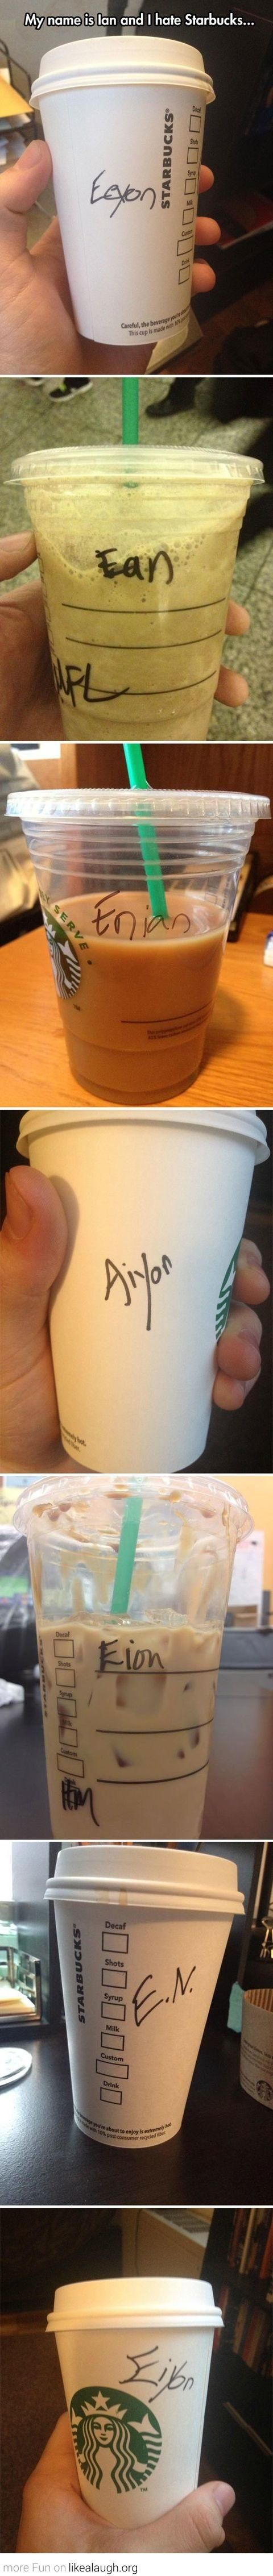 every single time i go to starbucks. it's not that difficult people!